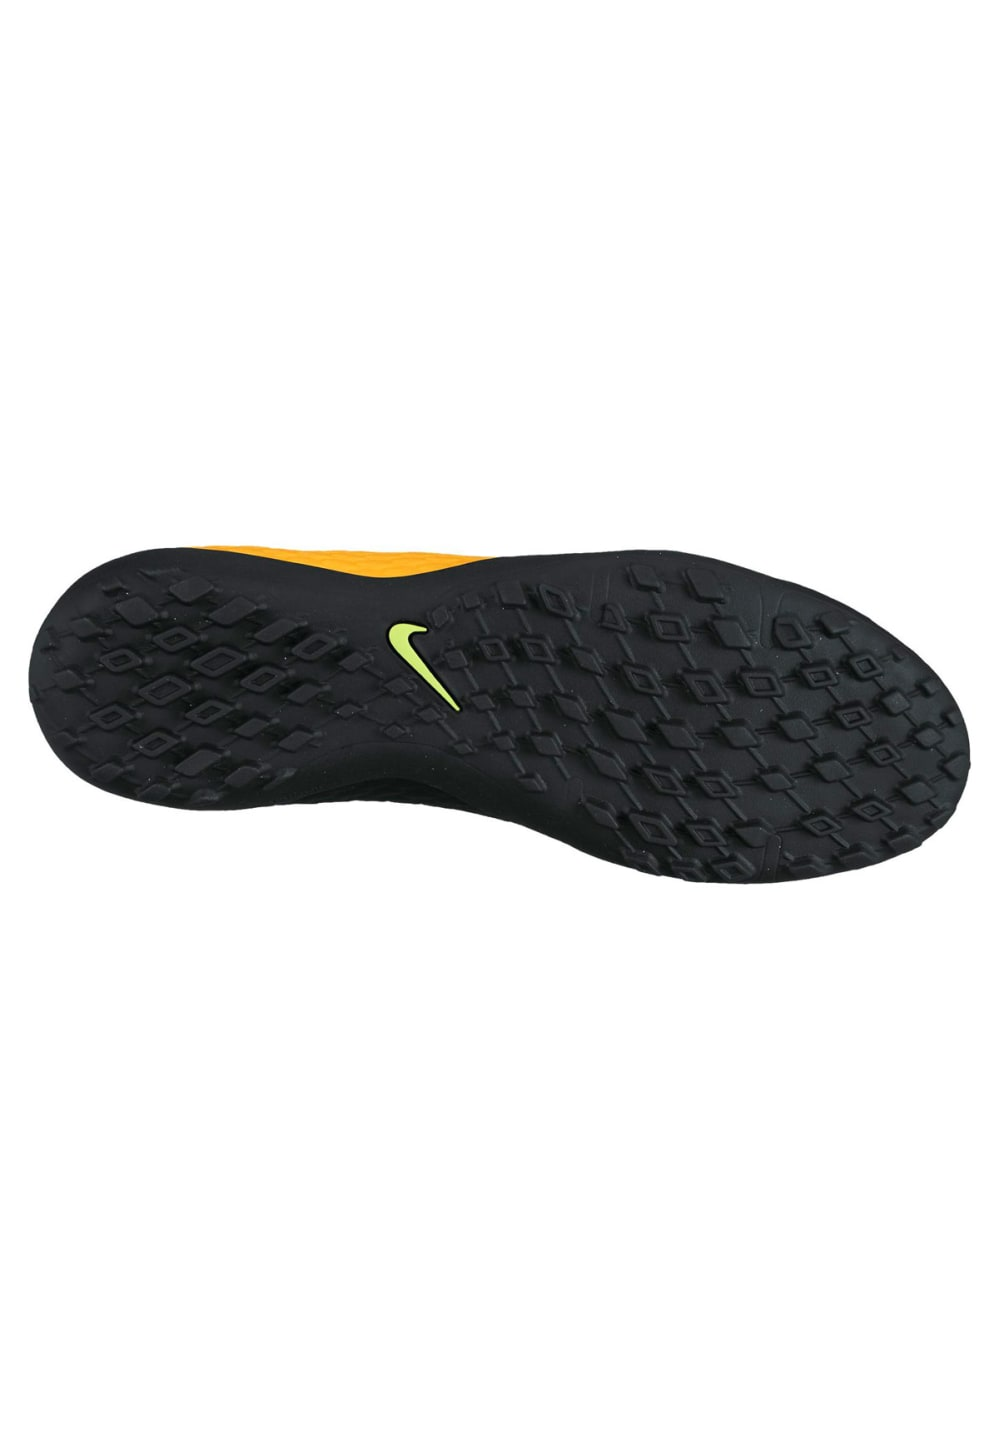 61a45a371 ... Nike Hypervenom Phelon III TF - Football Shoes for Men - Yellow. Back  to Overview. 1; 2. Previous